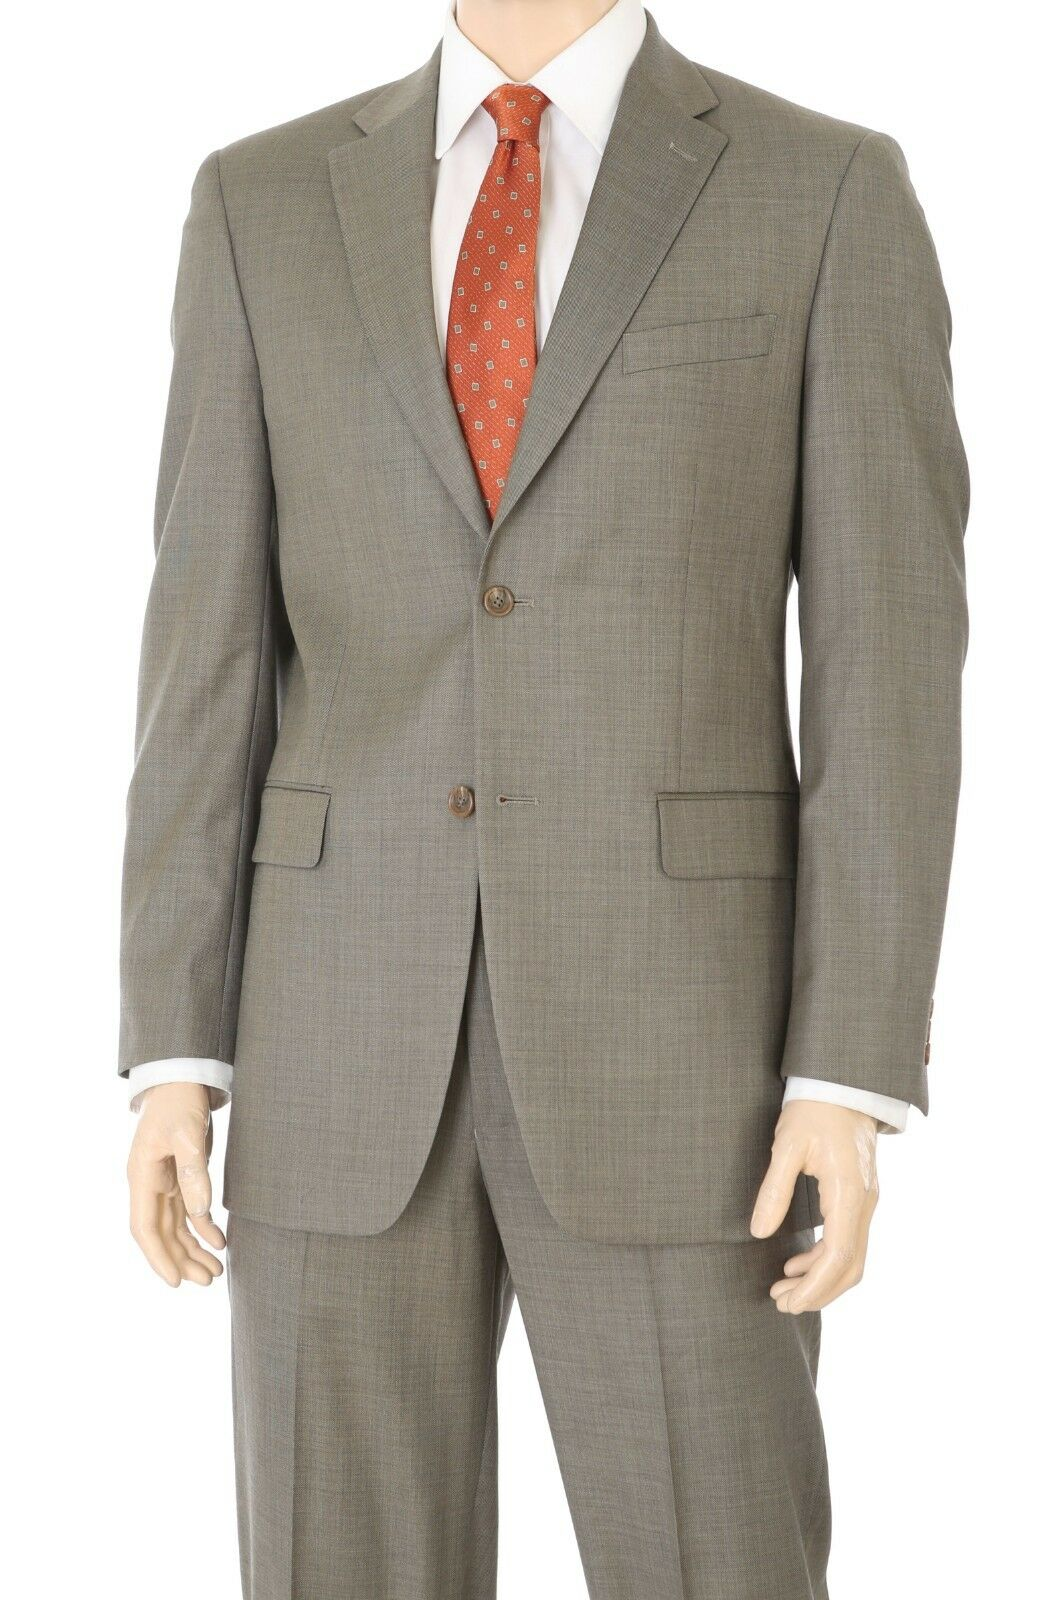 Jones New York Tan Brown 100% Wool Classic Fit Two Button Suit 36S 29.5W